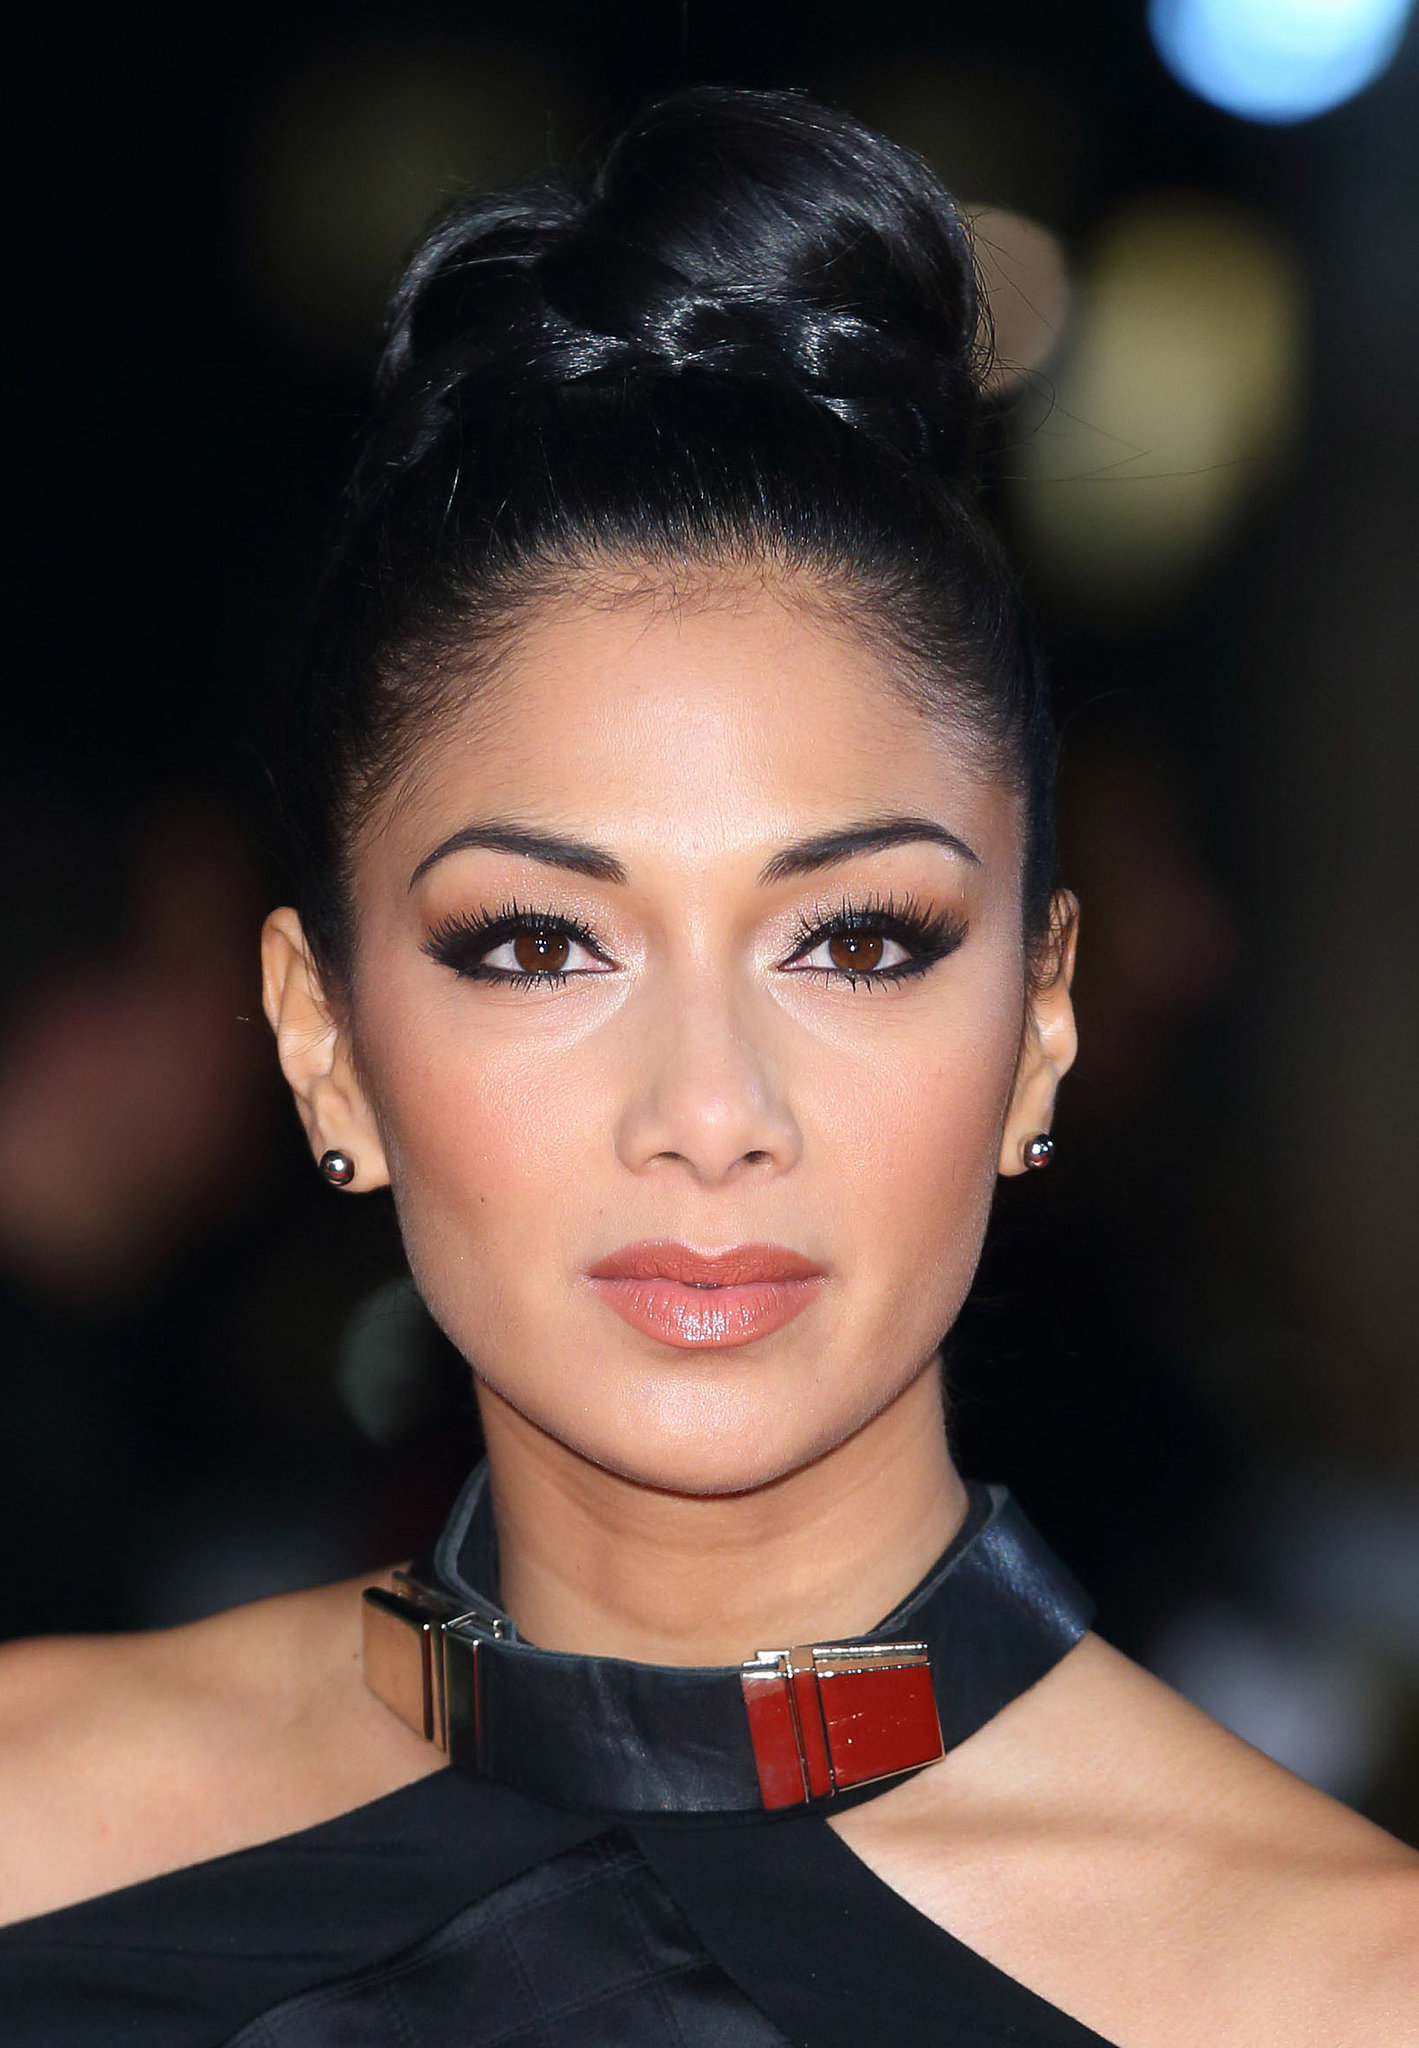 Just like you often see hair wrapped around the elastic of a ponytail, you can create a similar style with a topknot. Nicole Scherzinger accented hers with a braid.